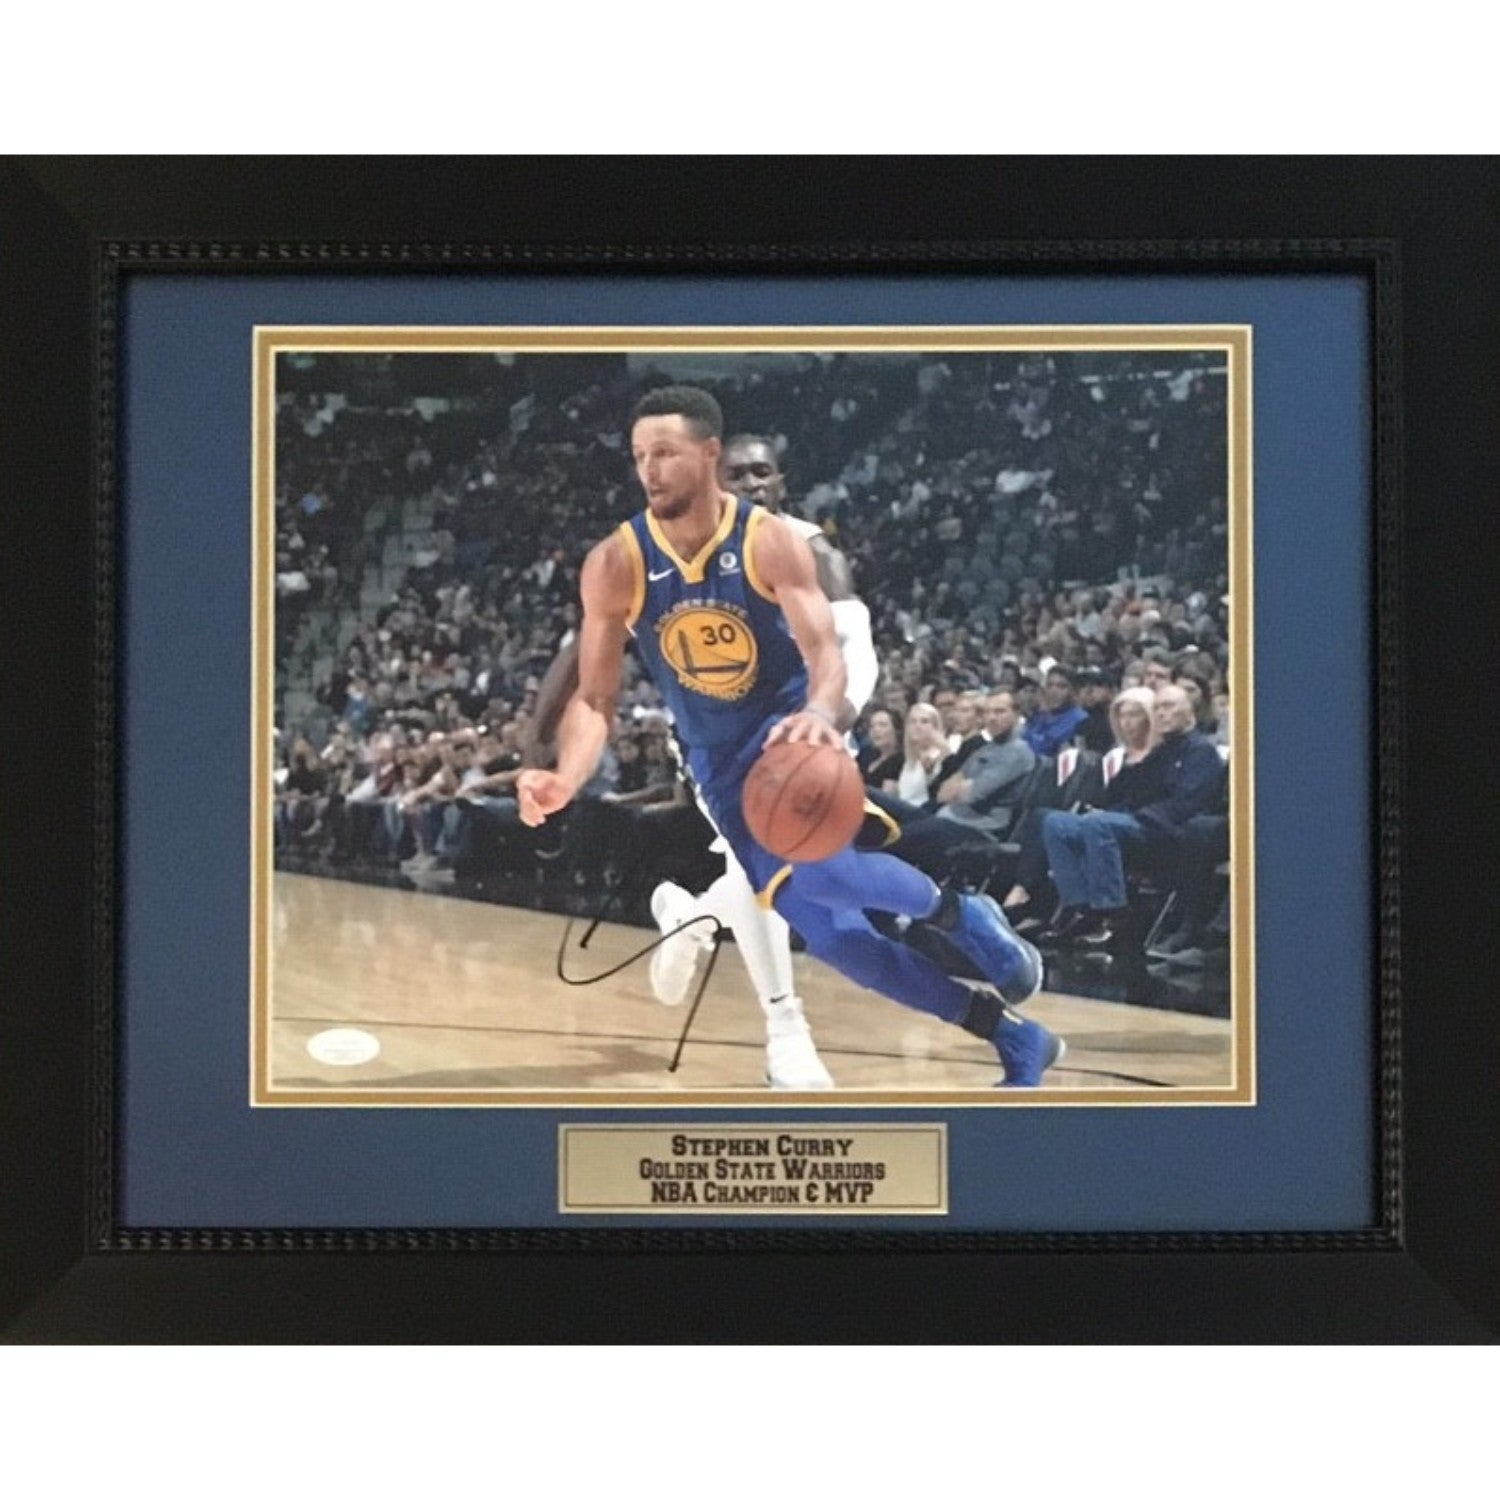 Stephen Curry Autographed Golden State Warriors Basketball Signed NBA Champion MVP 11x14 Photo Framed JSA COA 4-Powers Sports Memorabilia